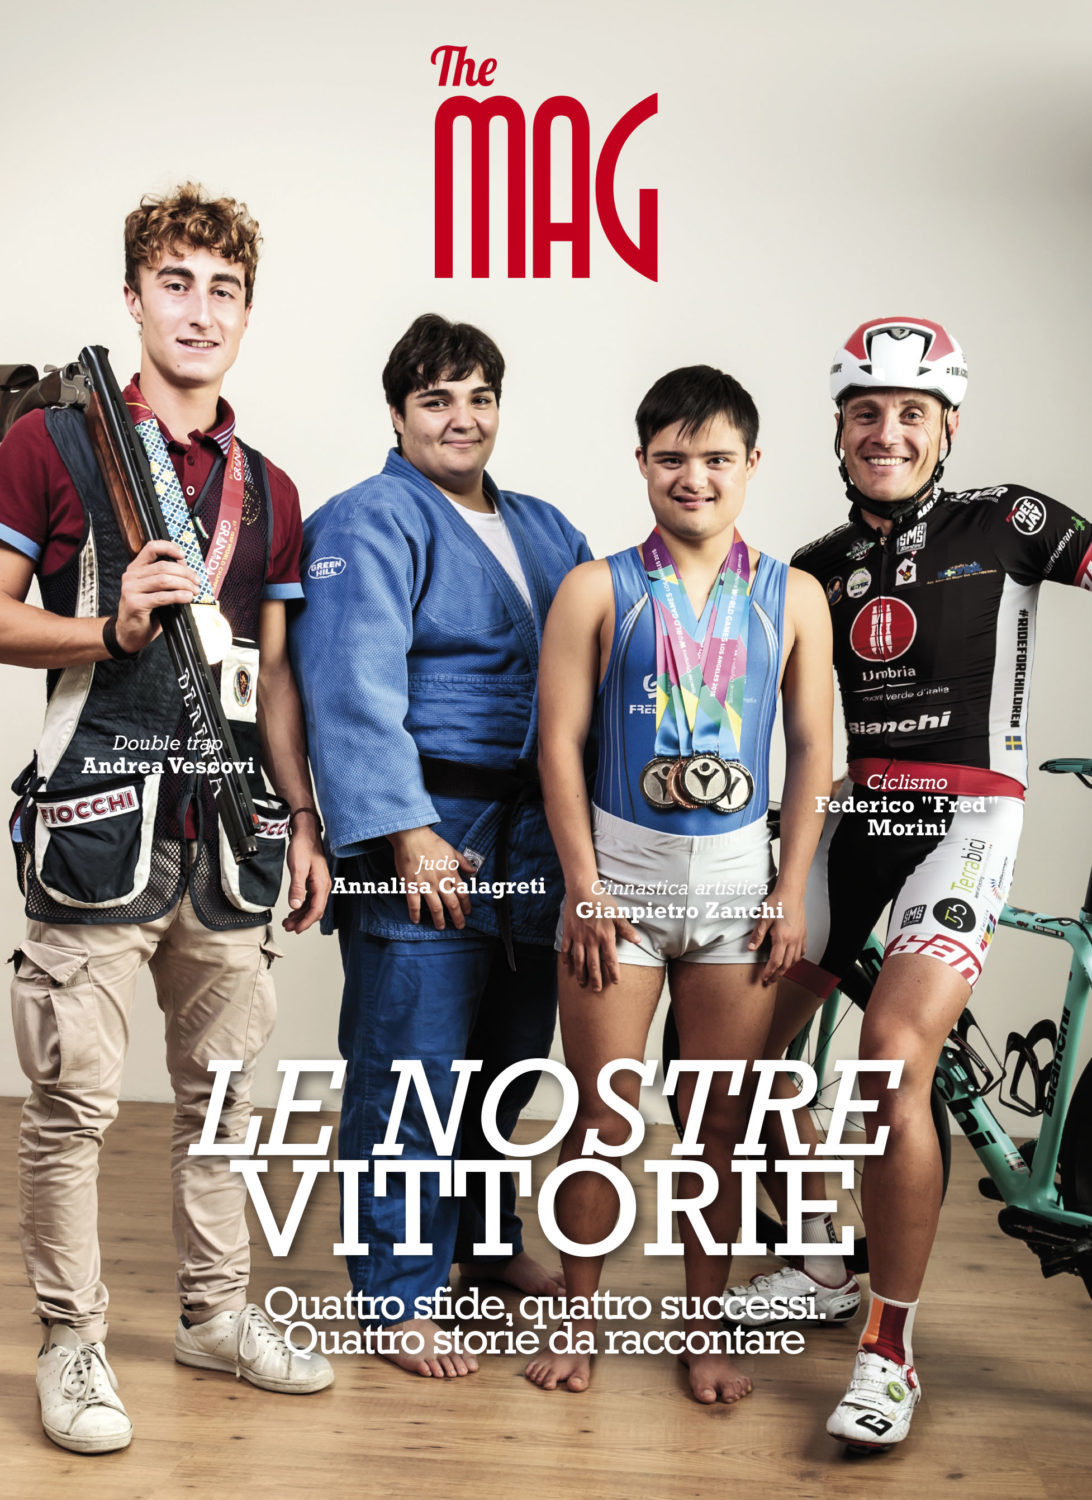 The Mag 18 - Le nostre Vittorie